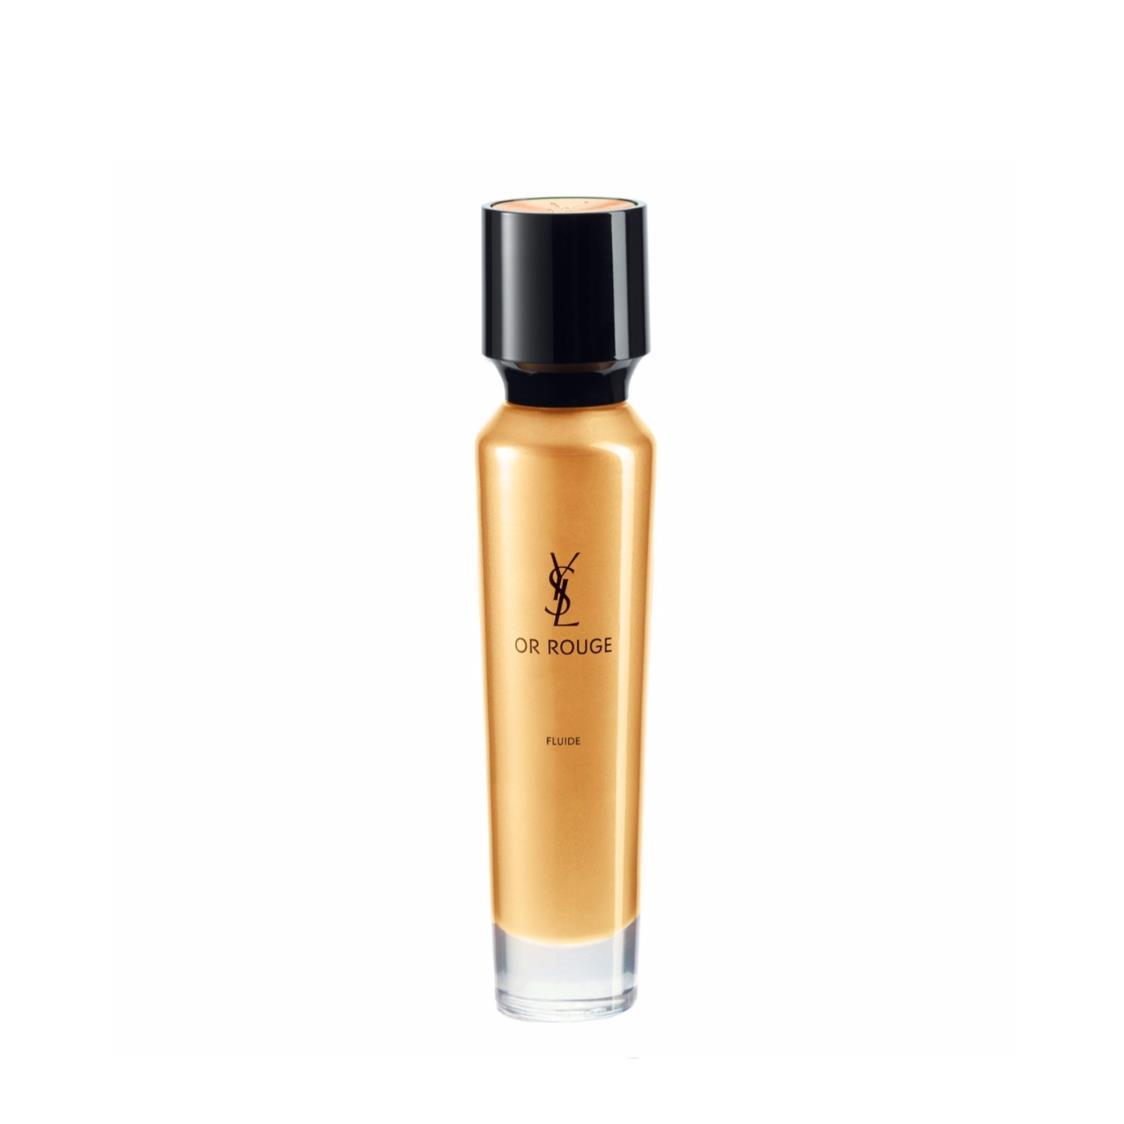 YSL Or Rouge Fluid